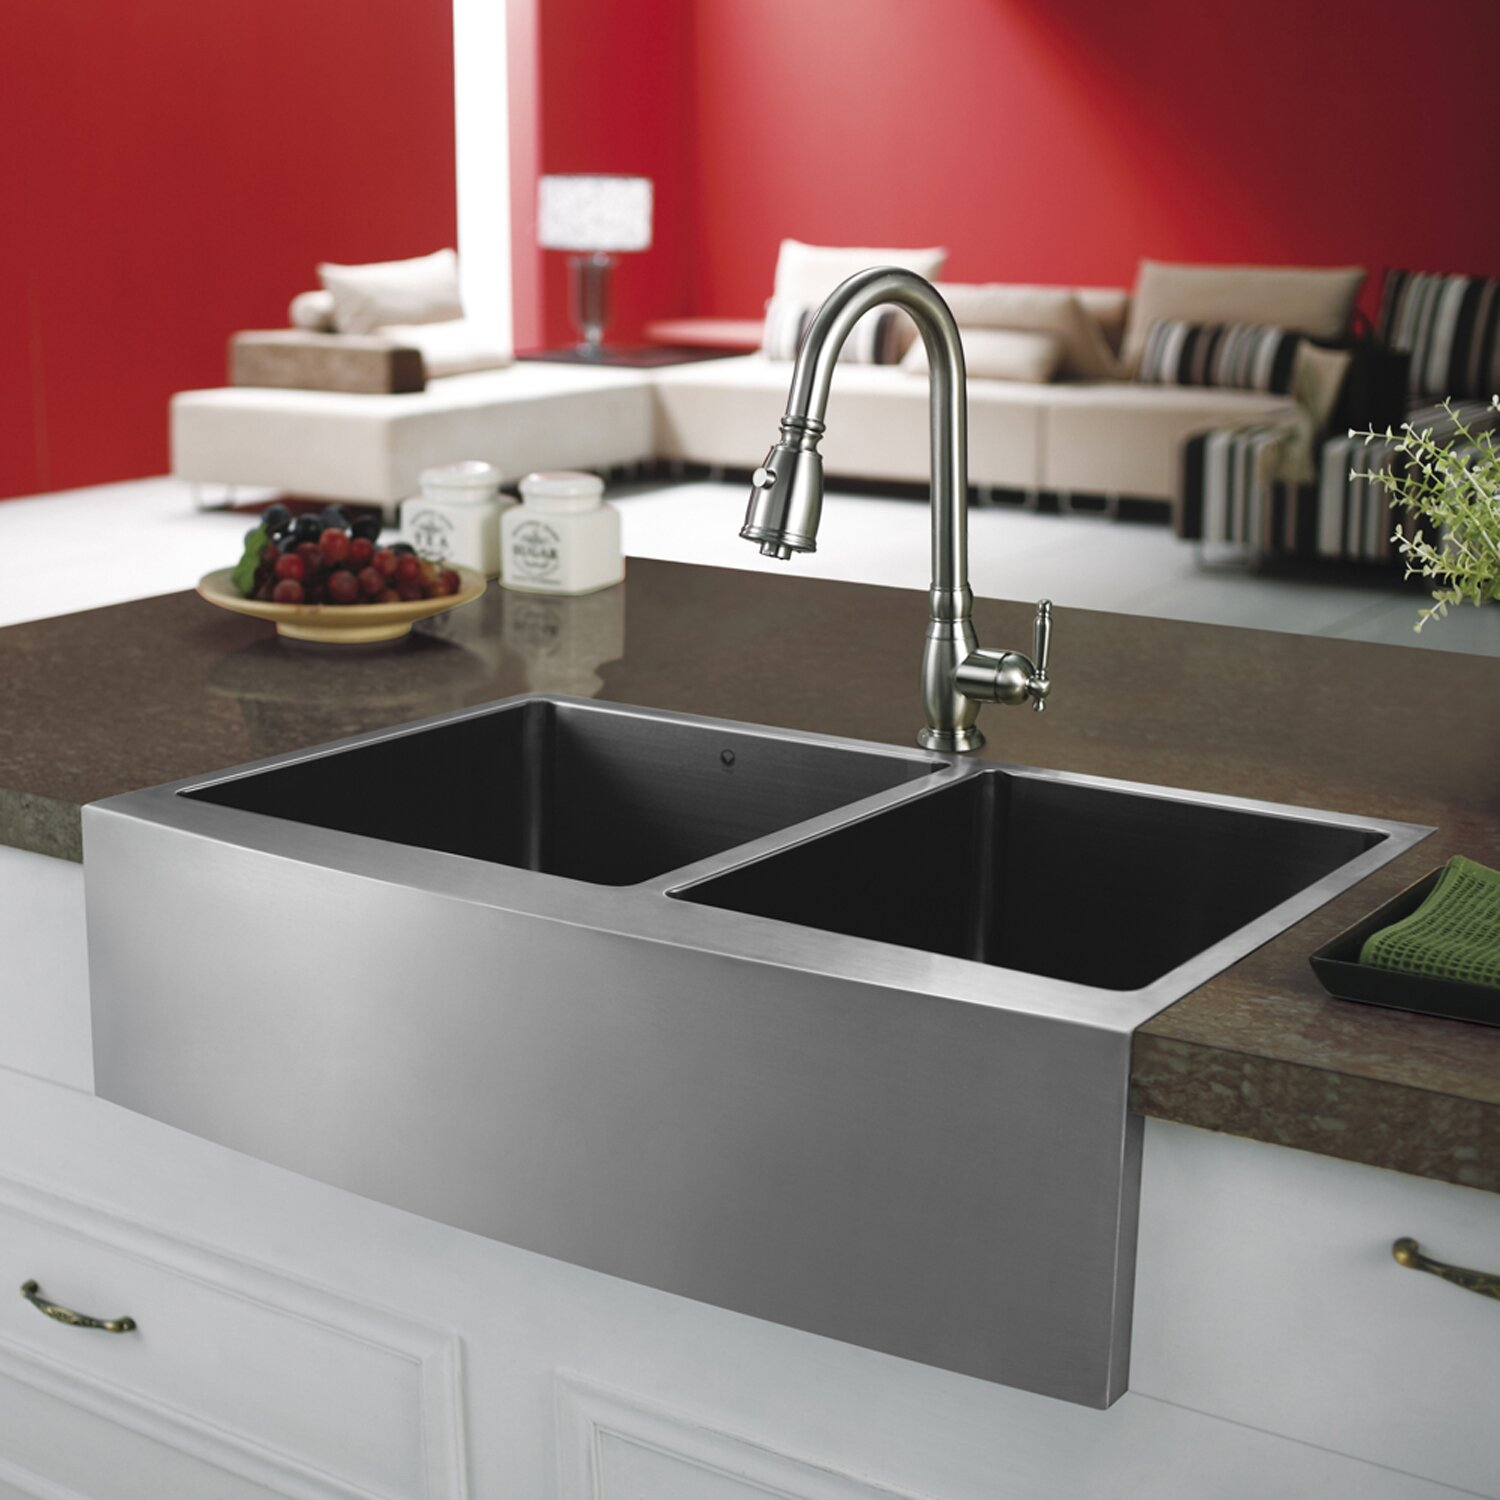 33 Inch Farm Sink : 33 inch Farmhouse Apron 60/40 Double Bowl 16 Gauge Stainless Steel ...